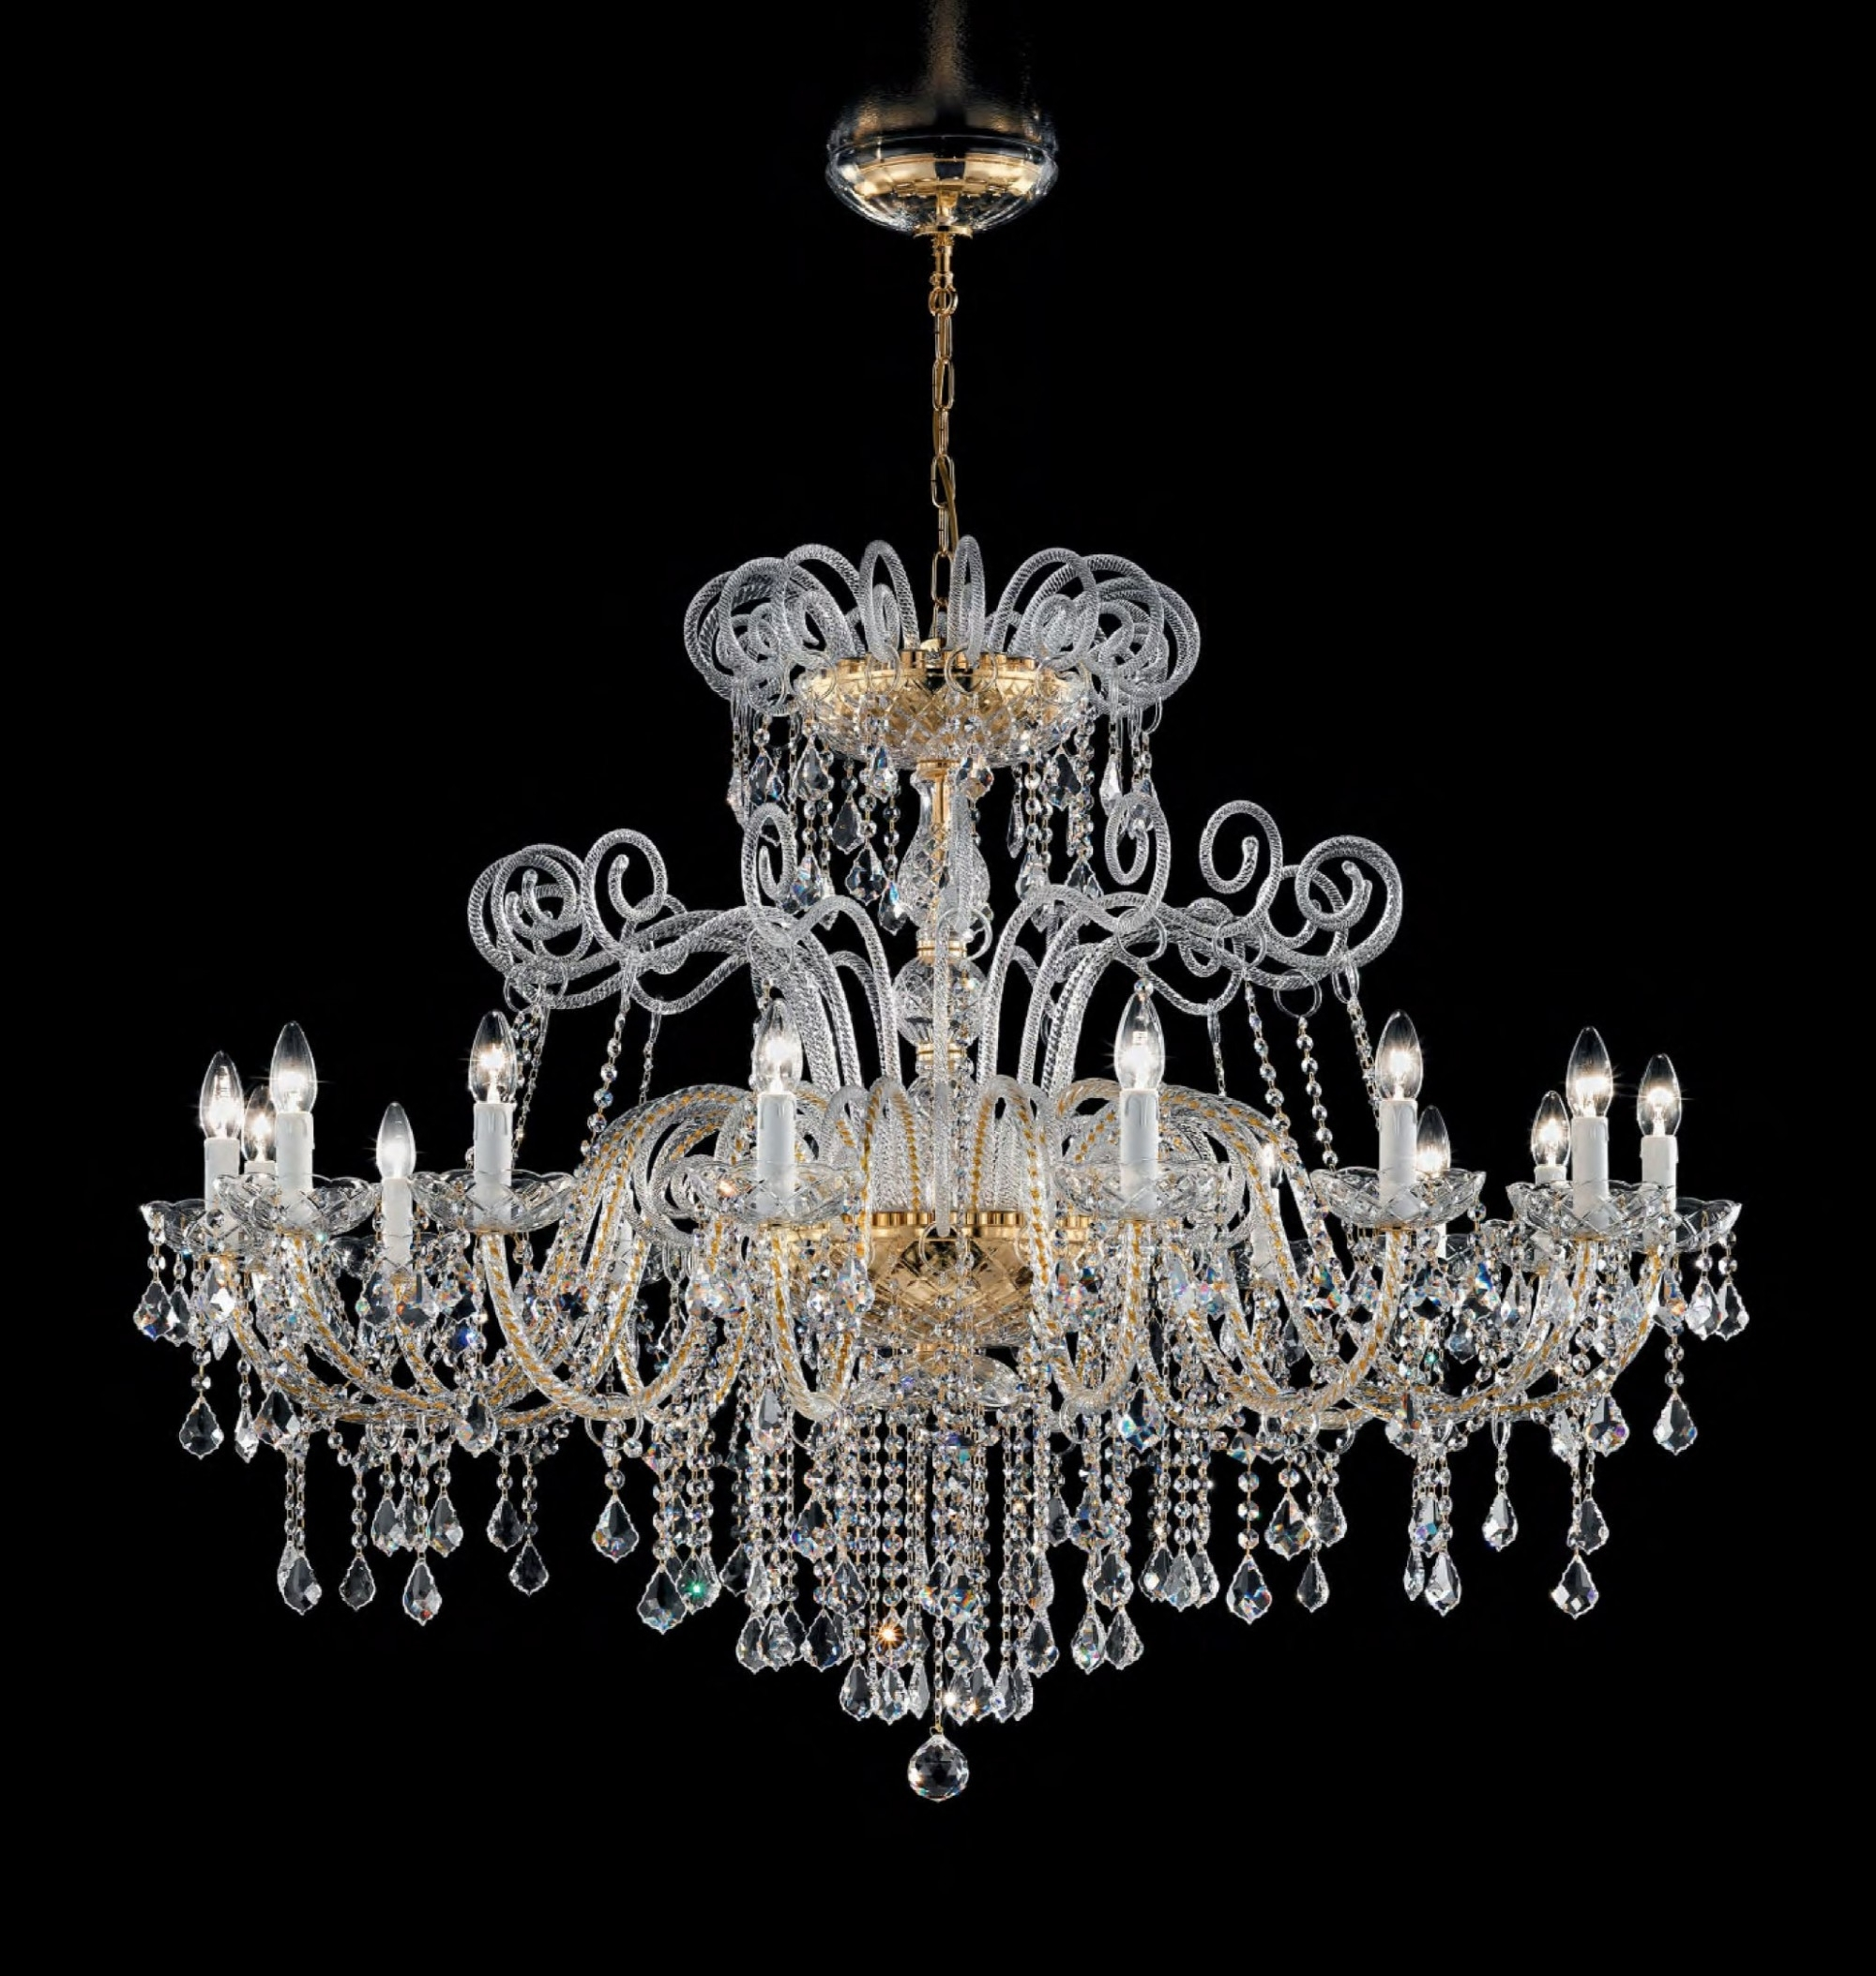 Antique Style Murano Glass Swarovski Crystals Chandelier Syl948K16 In Recent Antique Style Chandeliers (View 4 of 15)